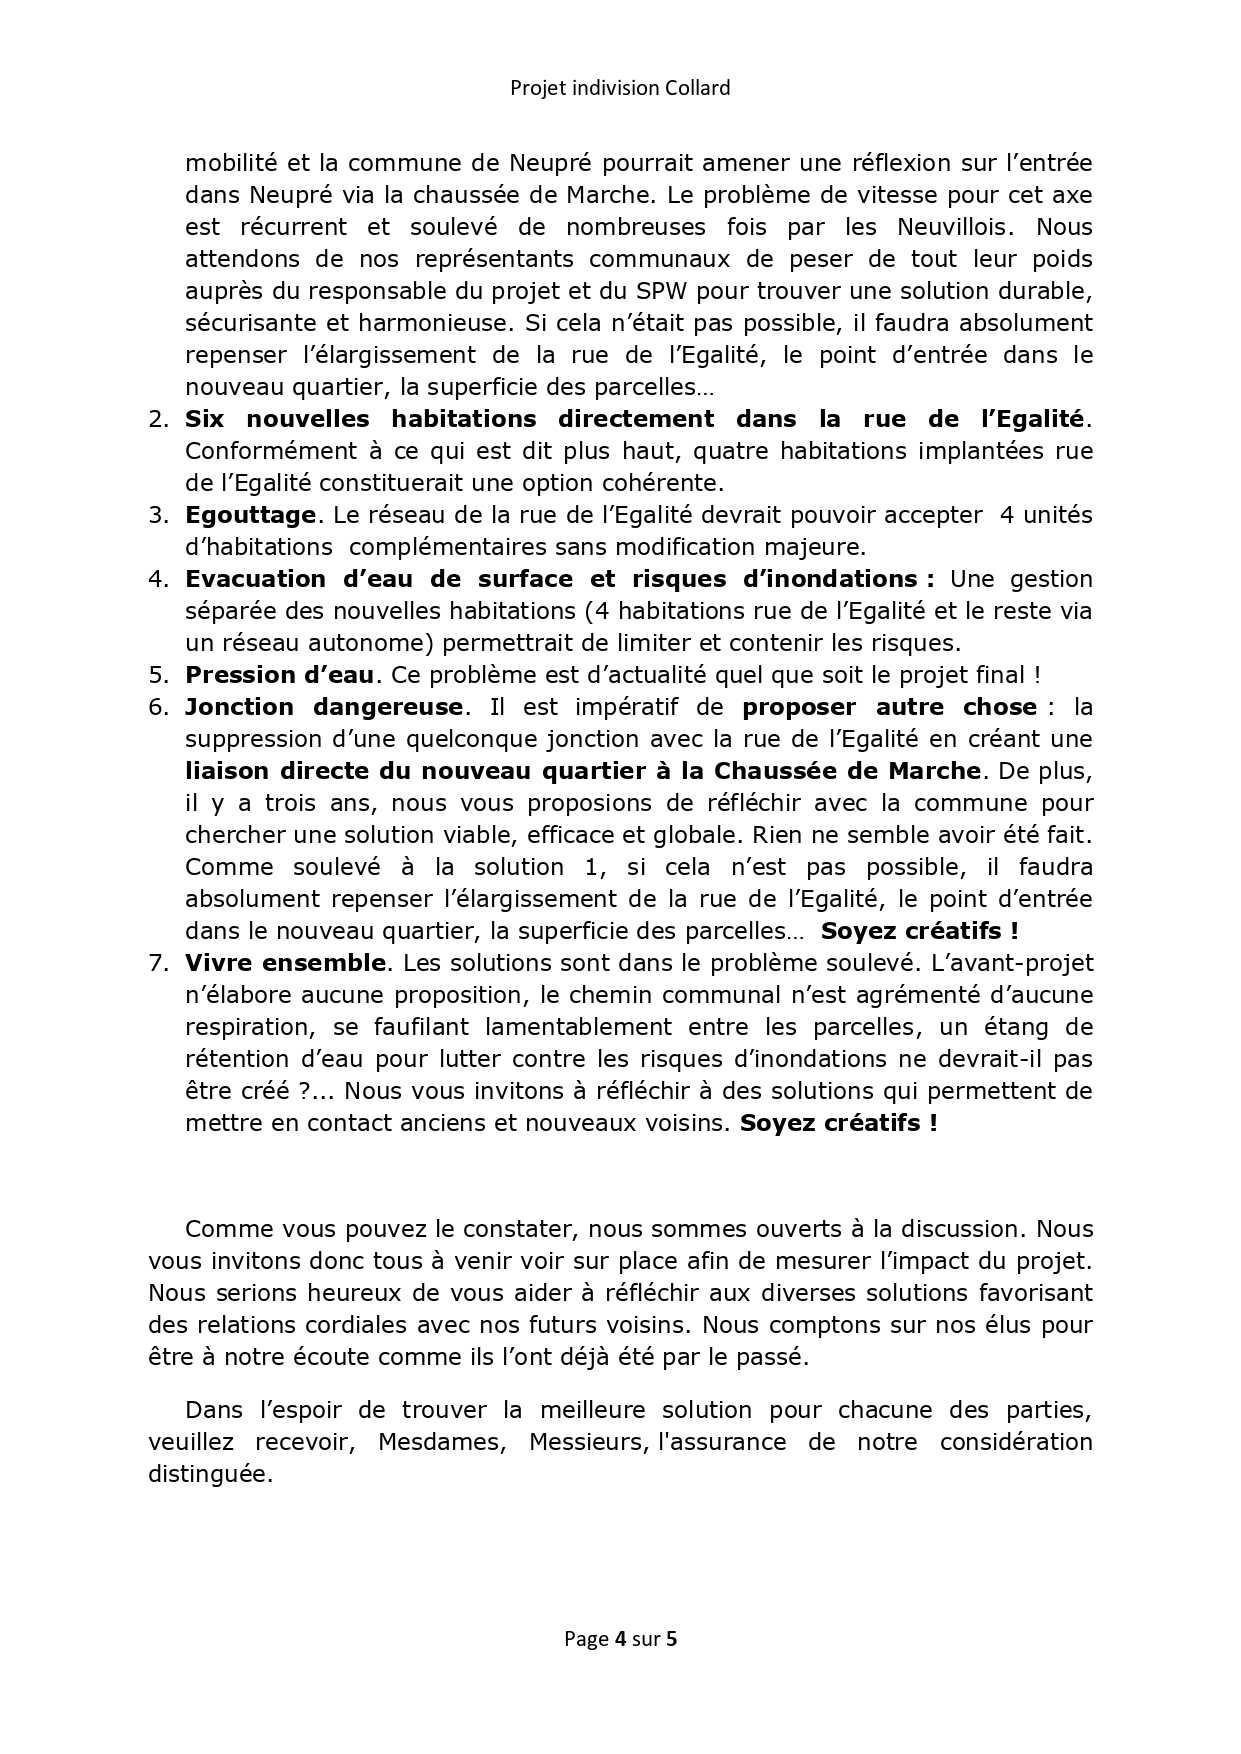 indivision_Collard_juin_2020_VERSION_DEFINITIVE_page-0004.jpg